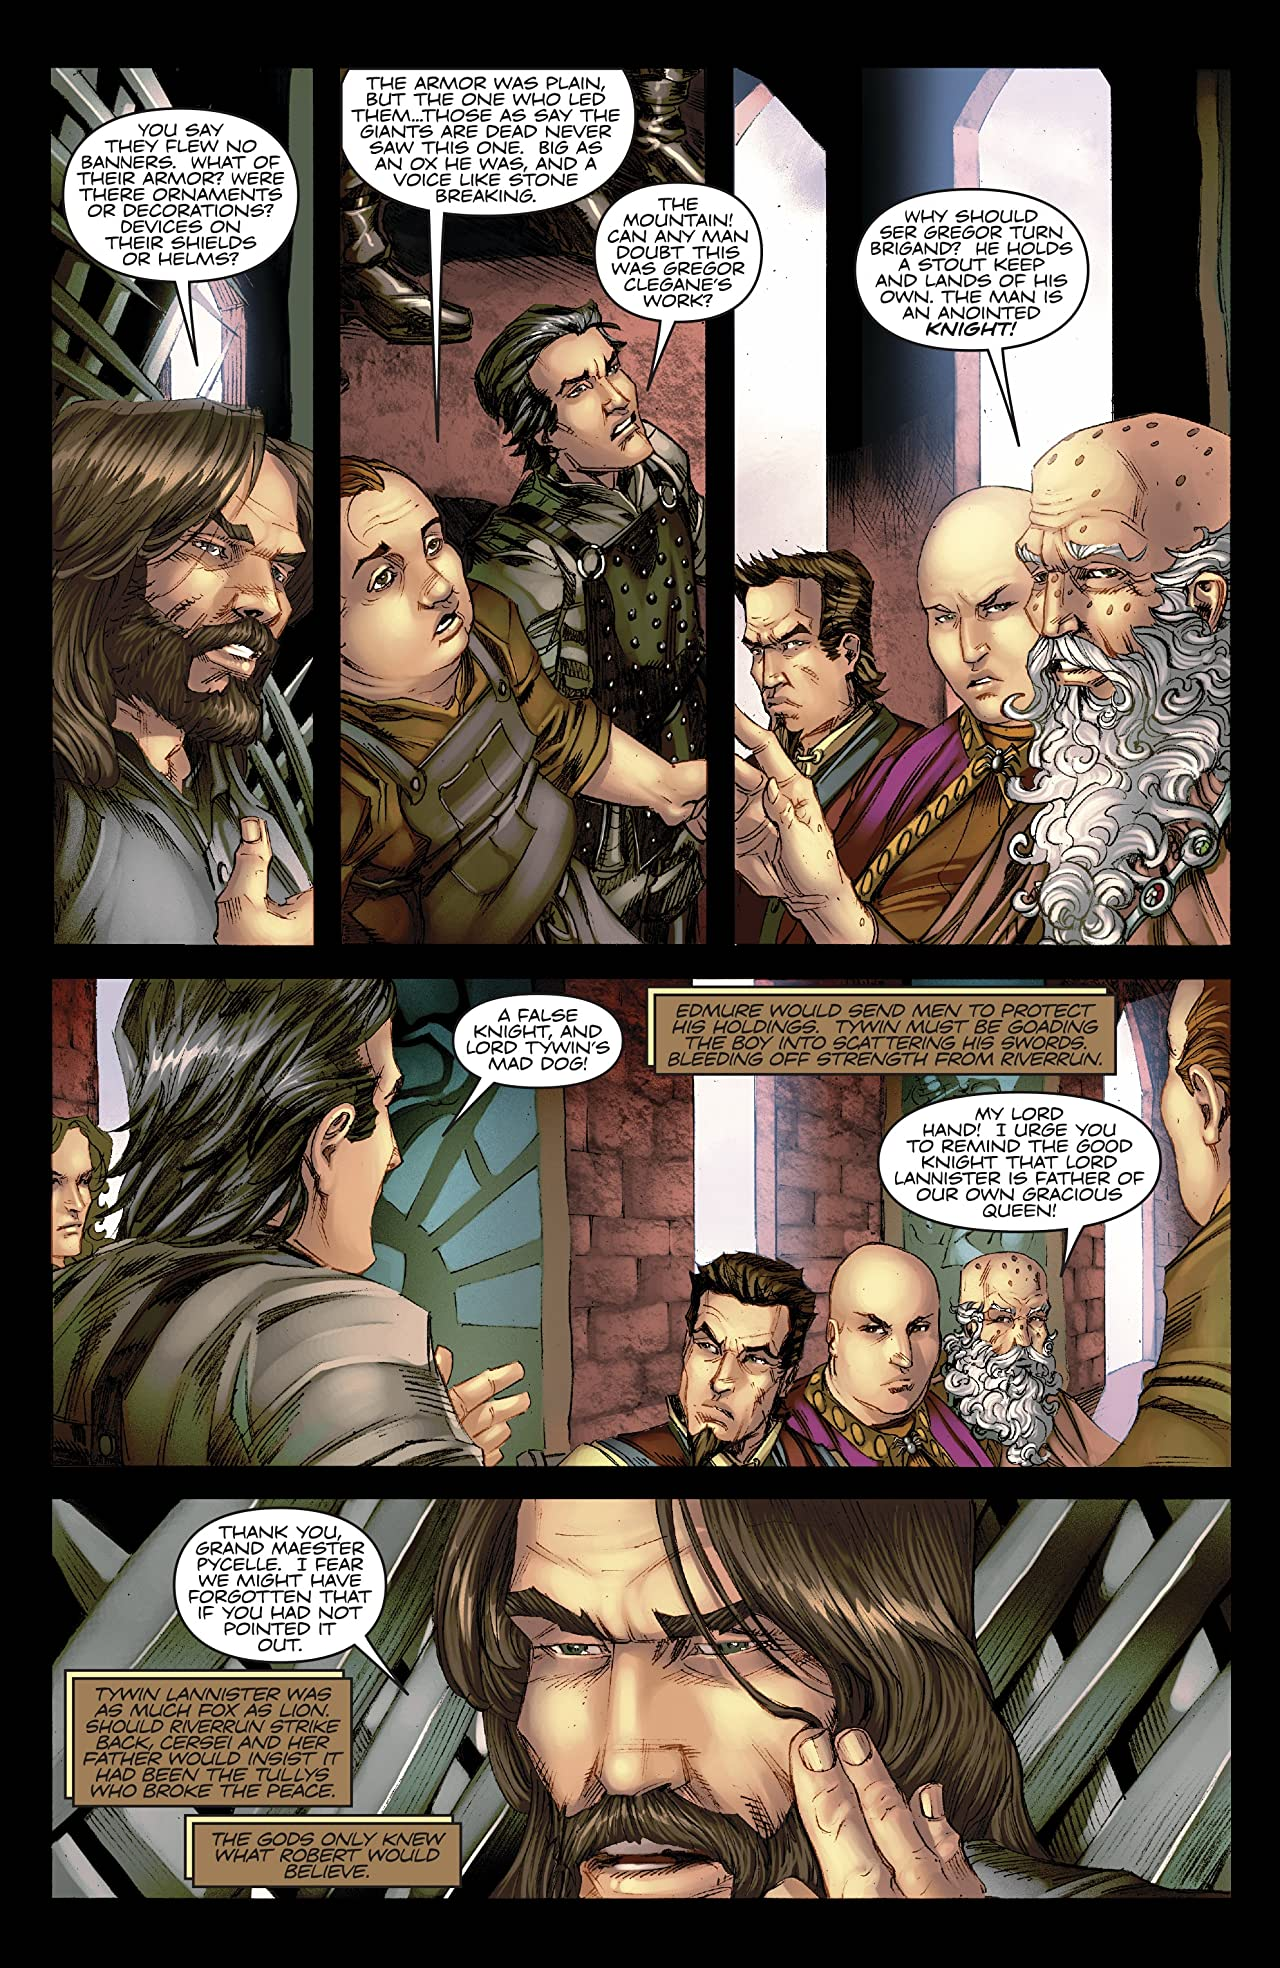 George R.R. Martin's A Game Of Thrones: The Comic Book No.14